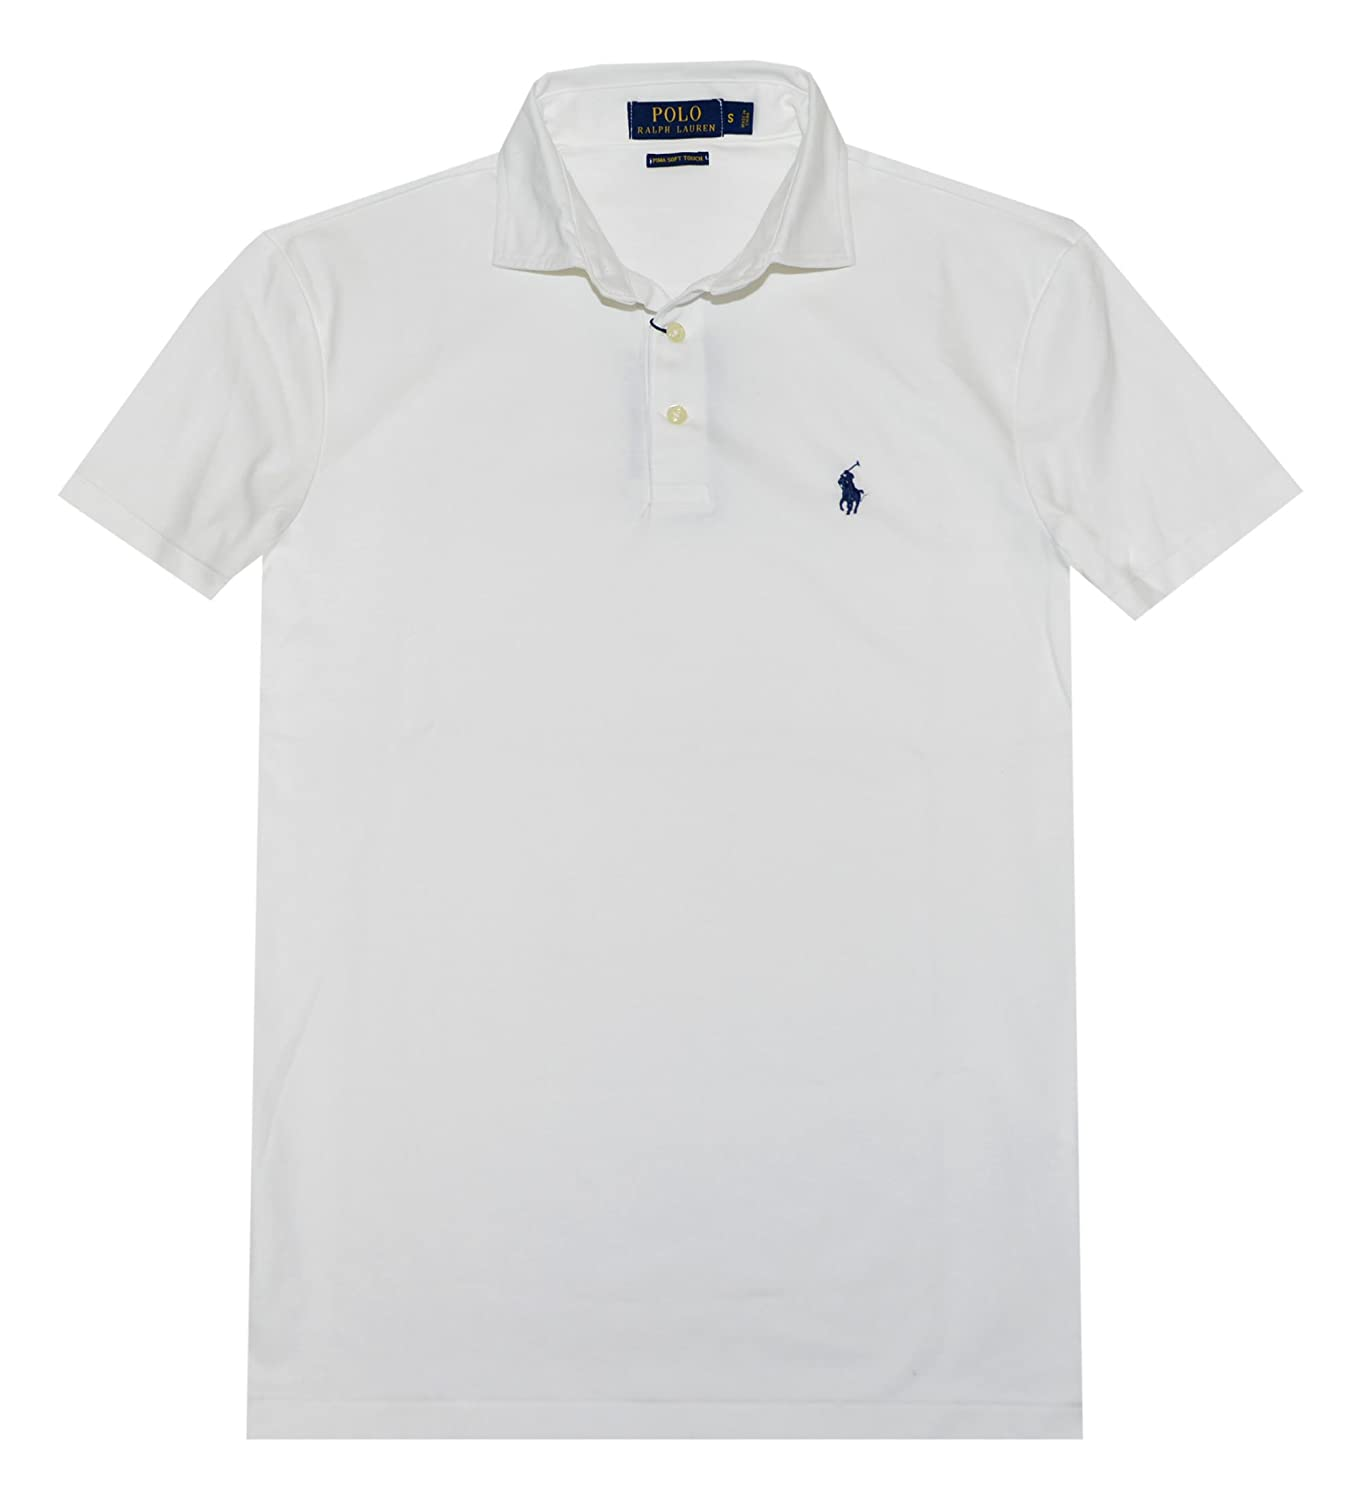 From Ralph Buy Polo ChinaSaddha Lauren Shirts f76ygbvY